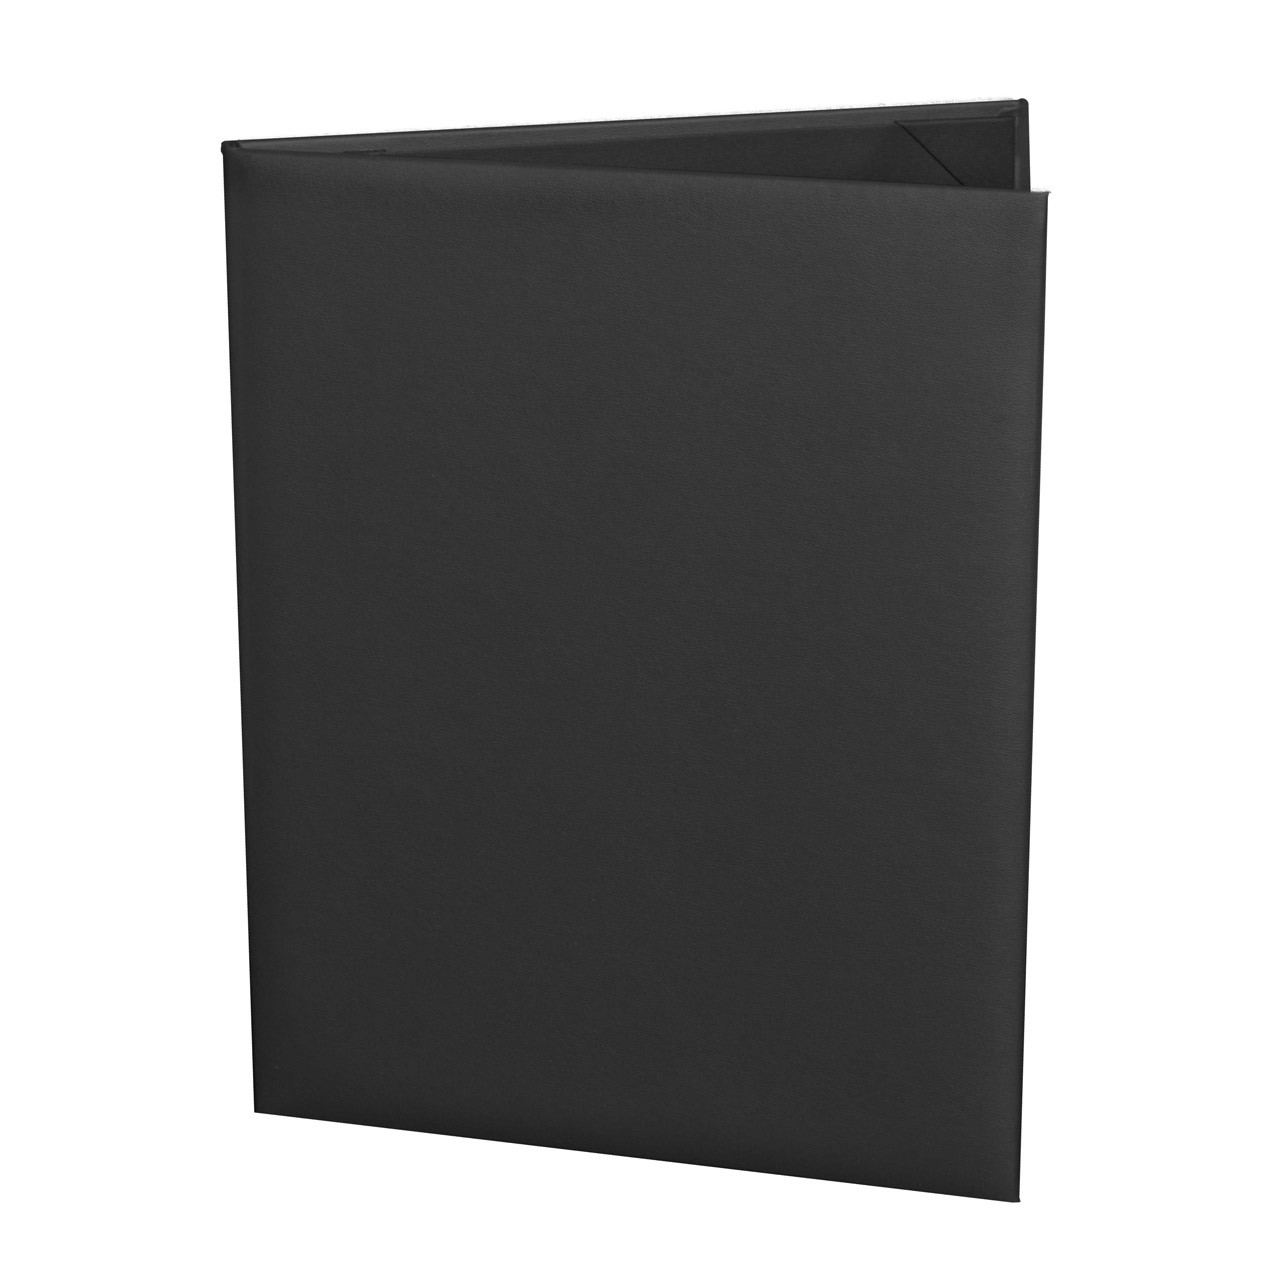 "8 1/2"" x 11"" Insert Menu Cover 2-panel black"